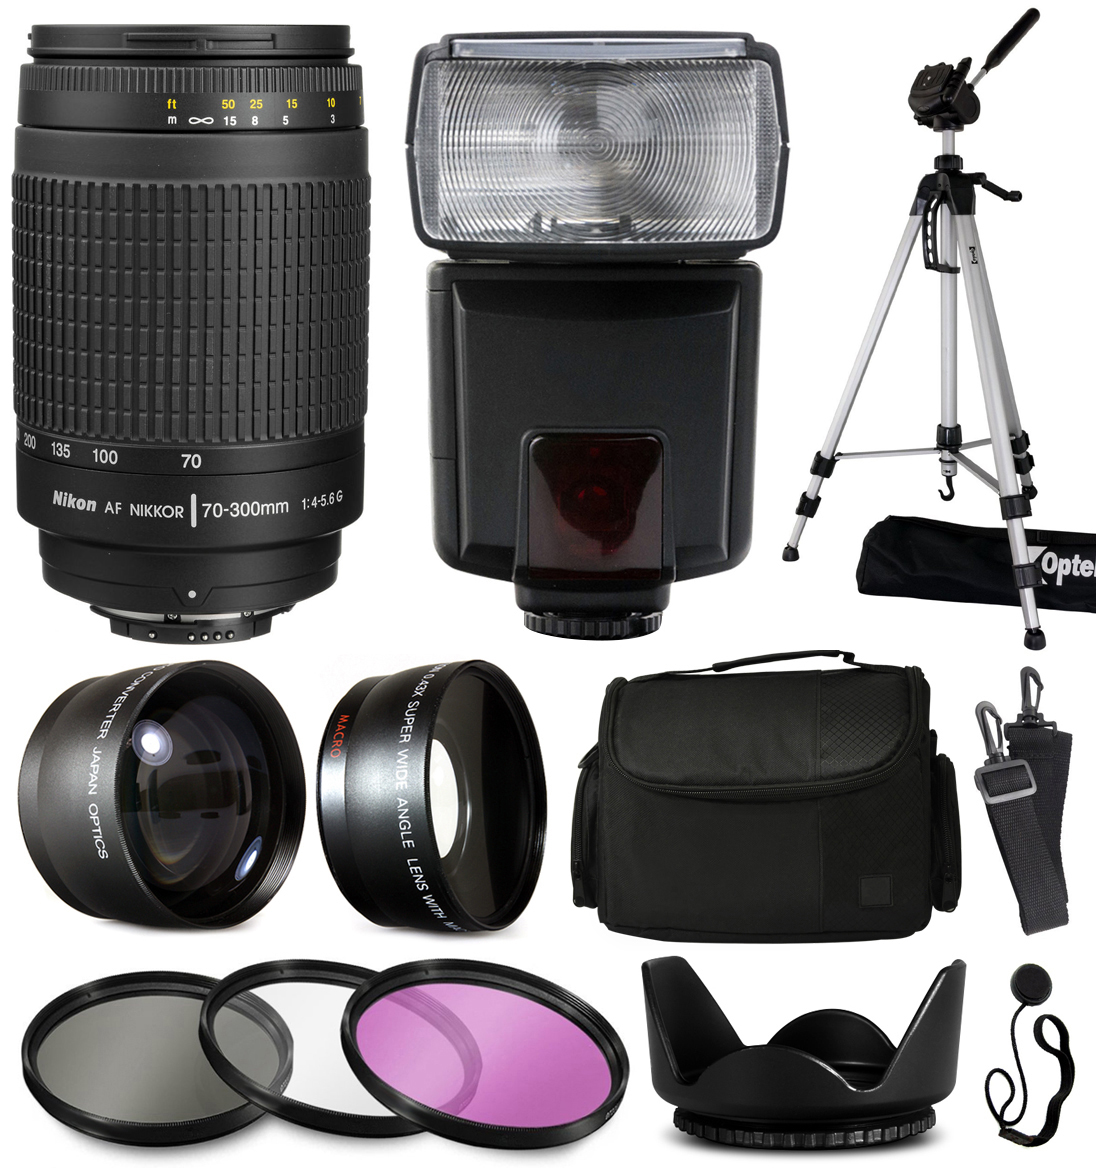 Nikon AF 70-300mm Manual Focus Lens+ Accessories with 2.2x & 0.43x Adapters + Flash + Tripod + Case + Filters... by Nikon